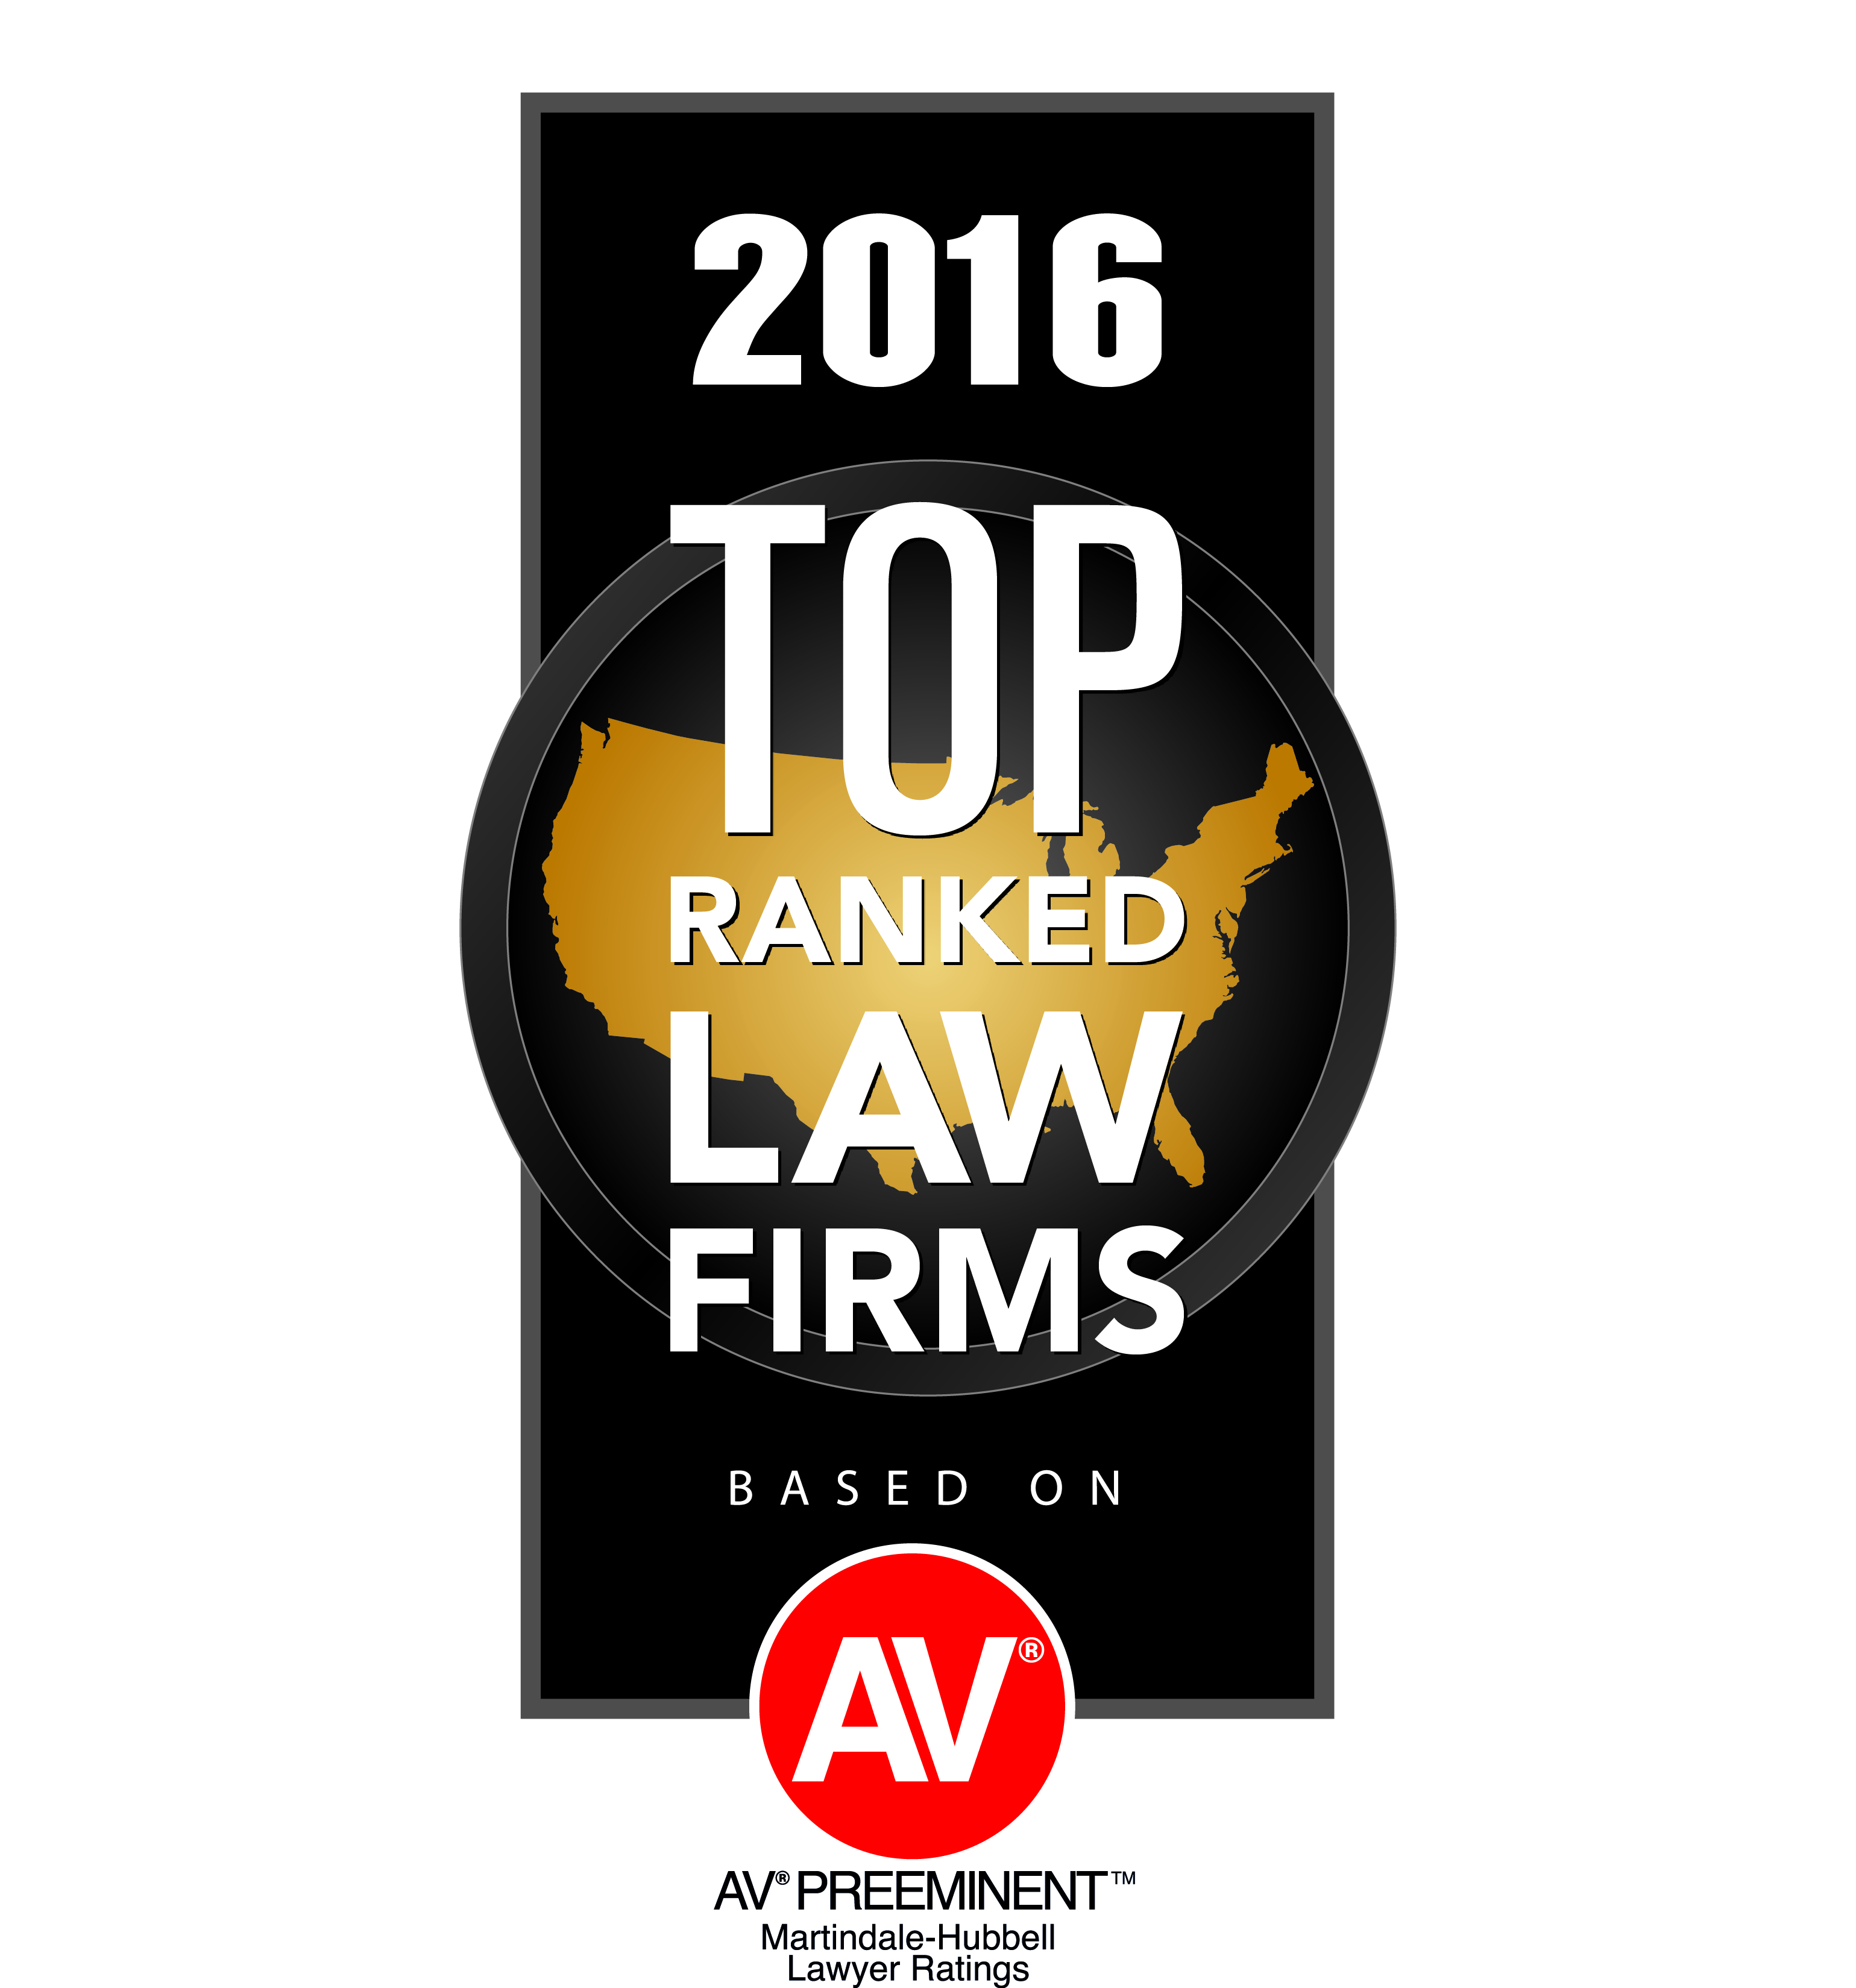 Fortune Top Ranked Law Firm Logo